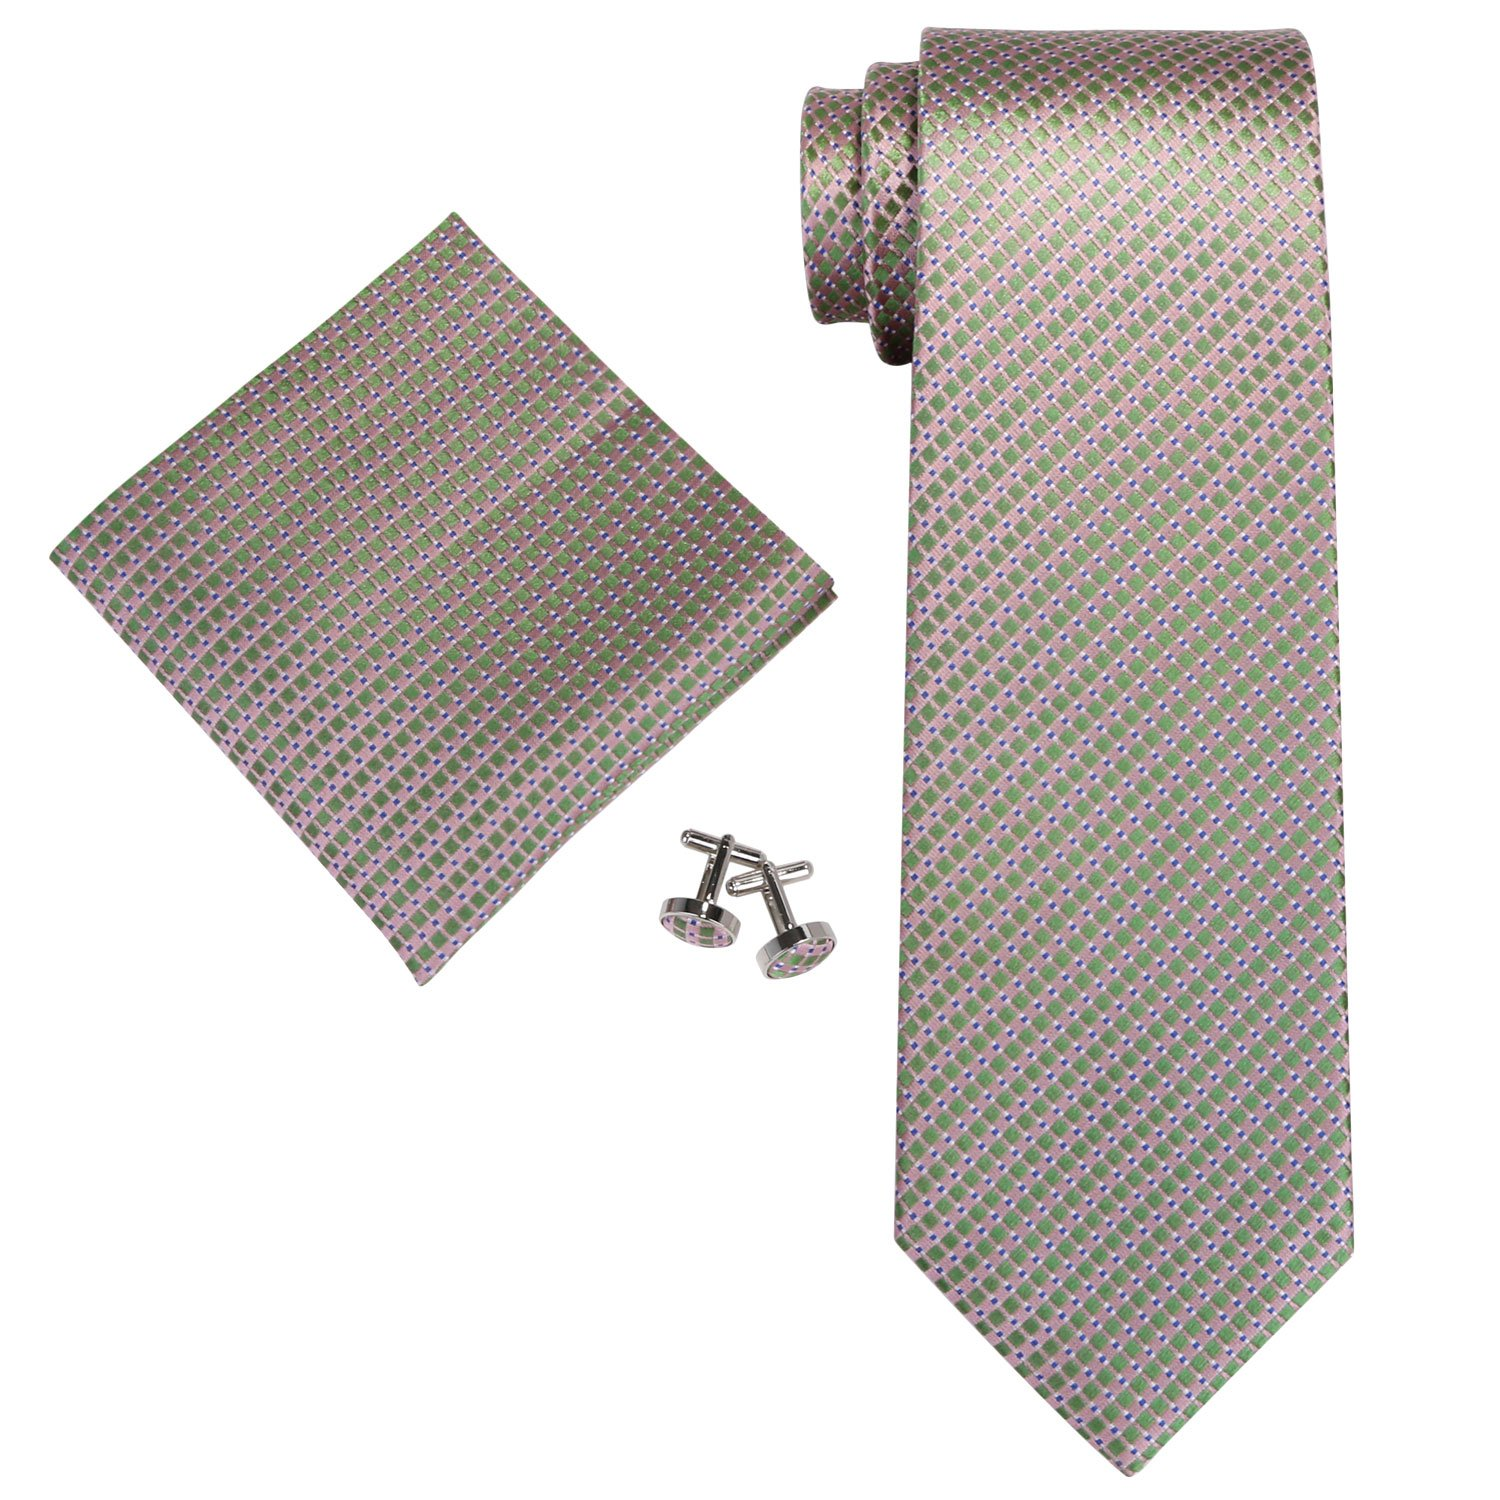 Landisun Stripes Mens Silk Necktie Set: Tie+Hanky+Cufflinks 14N Orange Blue White Gray, 3.75Wx59L 3.75Wx59L